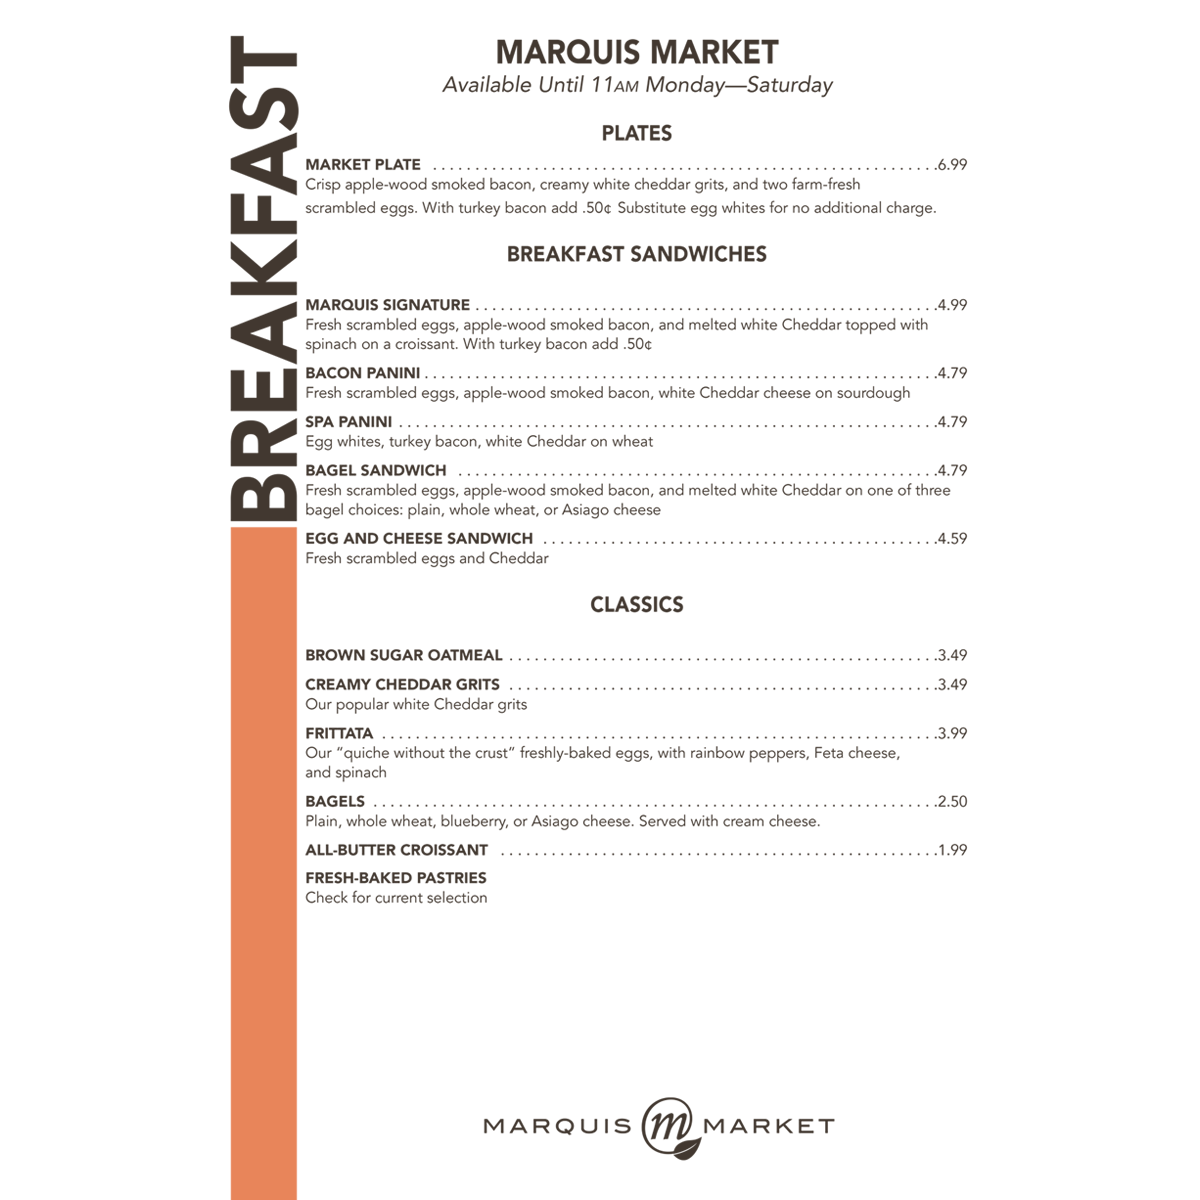 Marquis Market   Marquis Market was an urban cafe located in Fayetteville, North Carolina. The cafe wanted a design that matched the urban atmosphere the cafe entailed. The company I worked for was hired to design the menus. I used InDesign to create the layout.